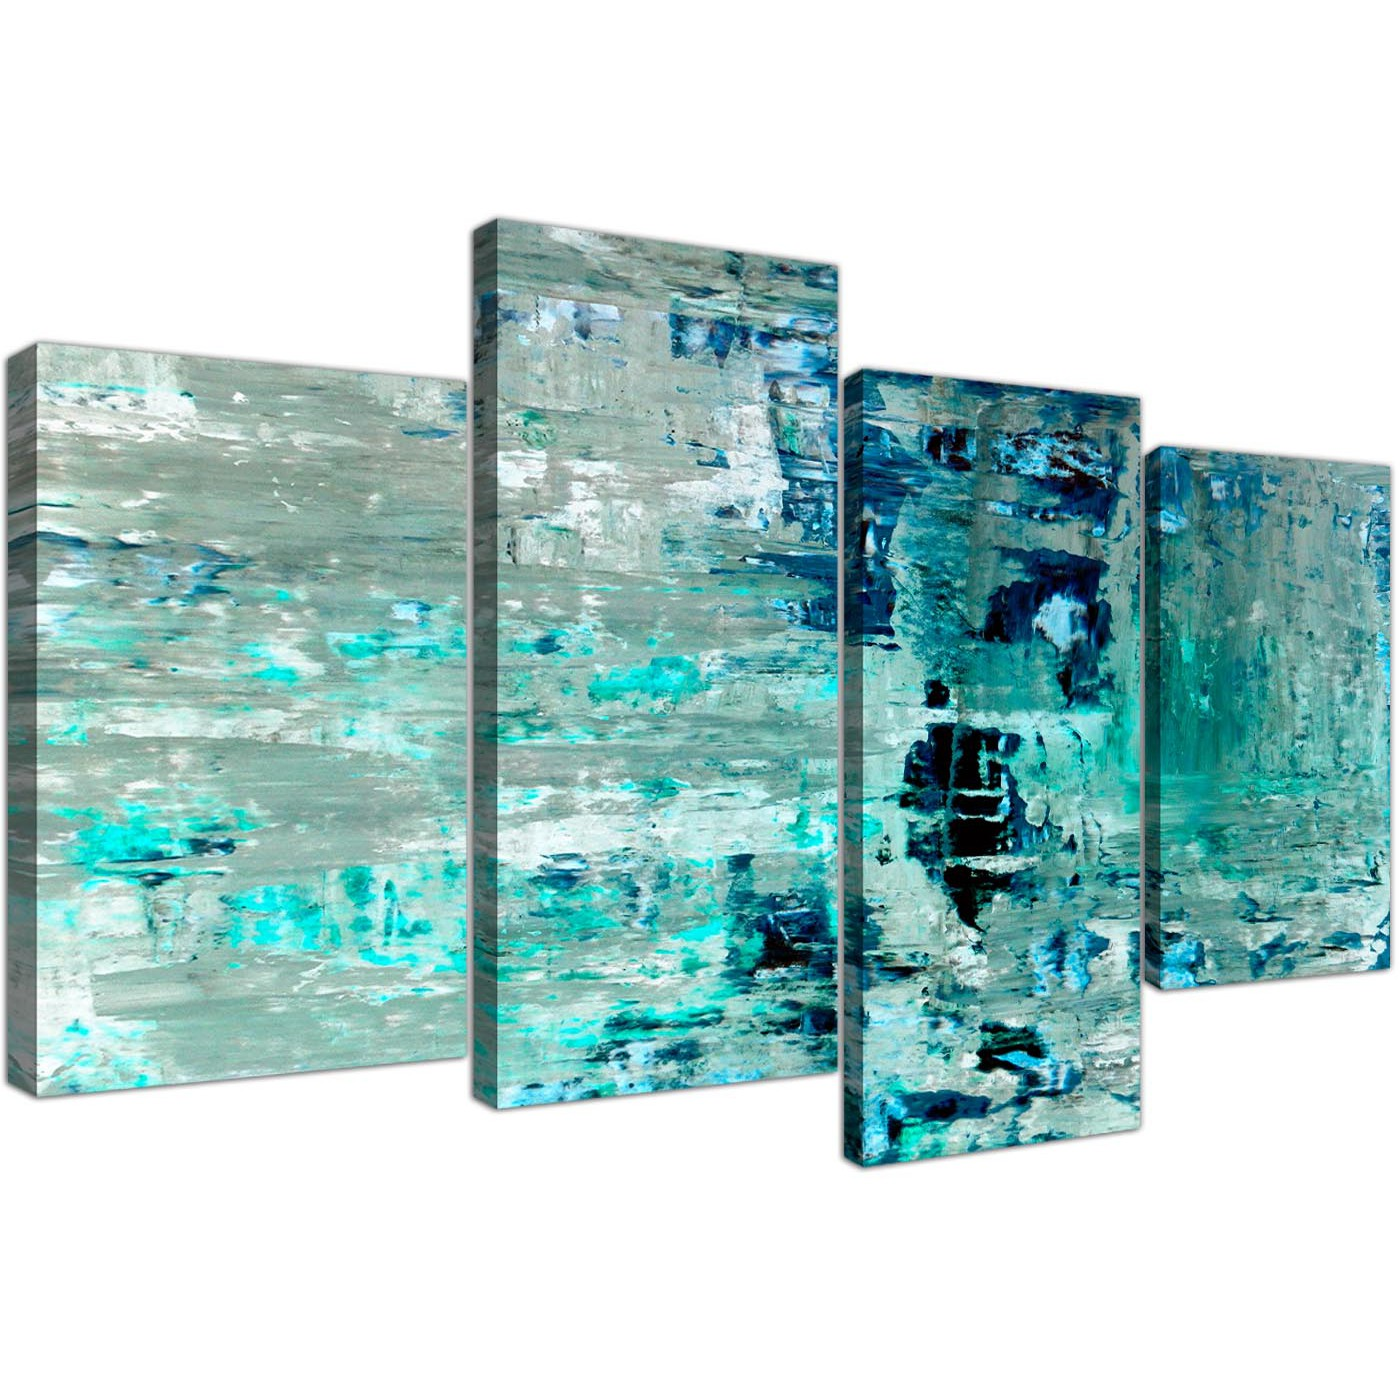 Oversized large turquoise teal abstract painting wall art print canvas split 4 set 4333 for your display gallery item 1